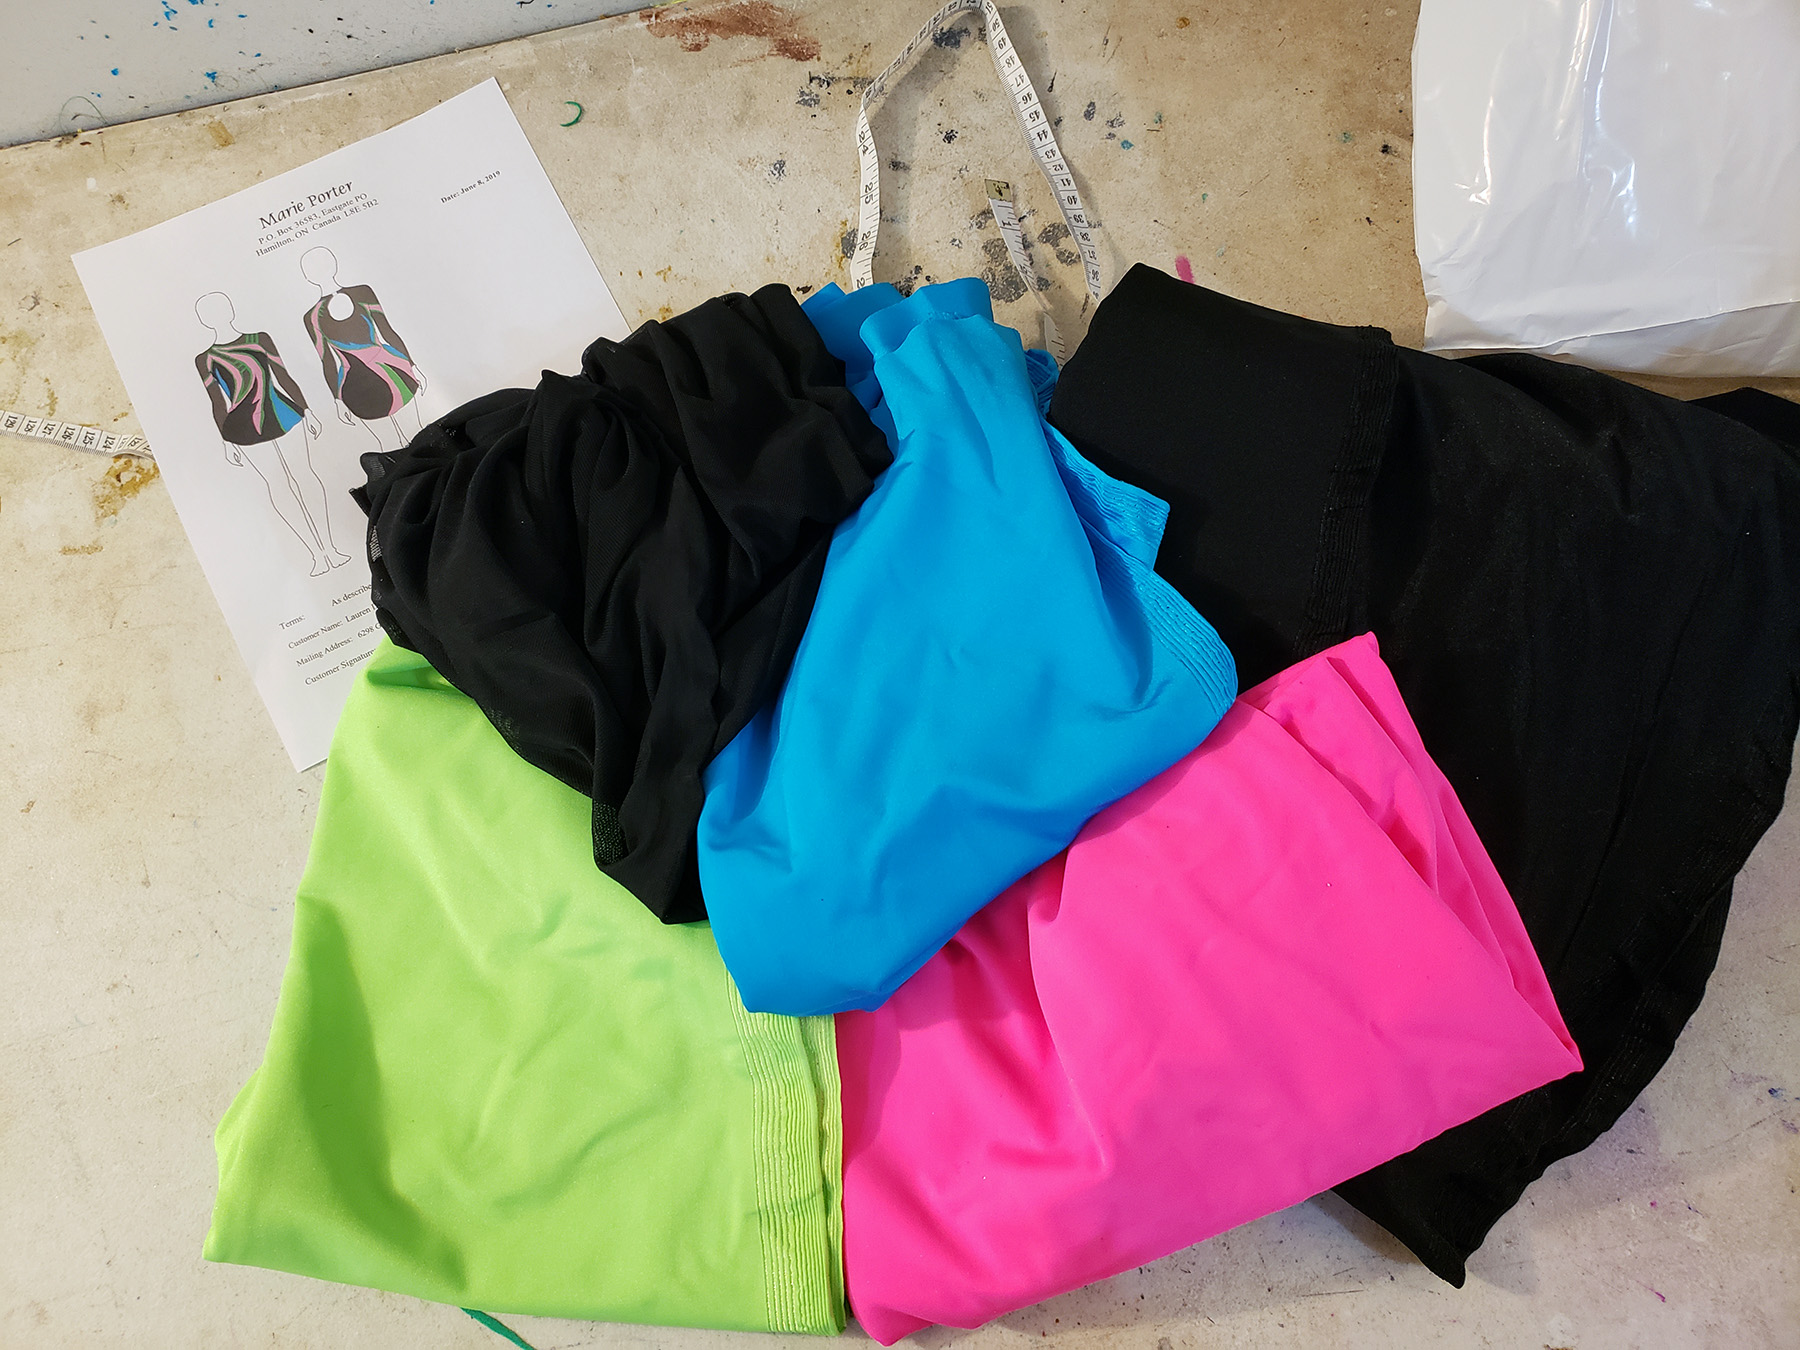 A pile of fabric on a work table - black spandex, black mesg, neon pink, neon green, and sky blue spandex.